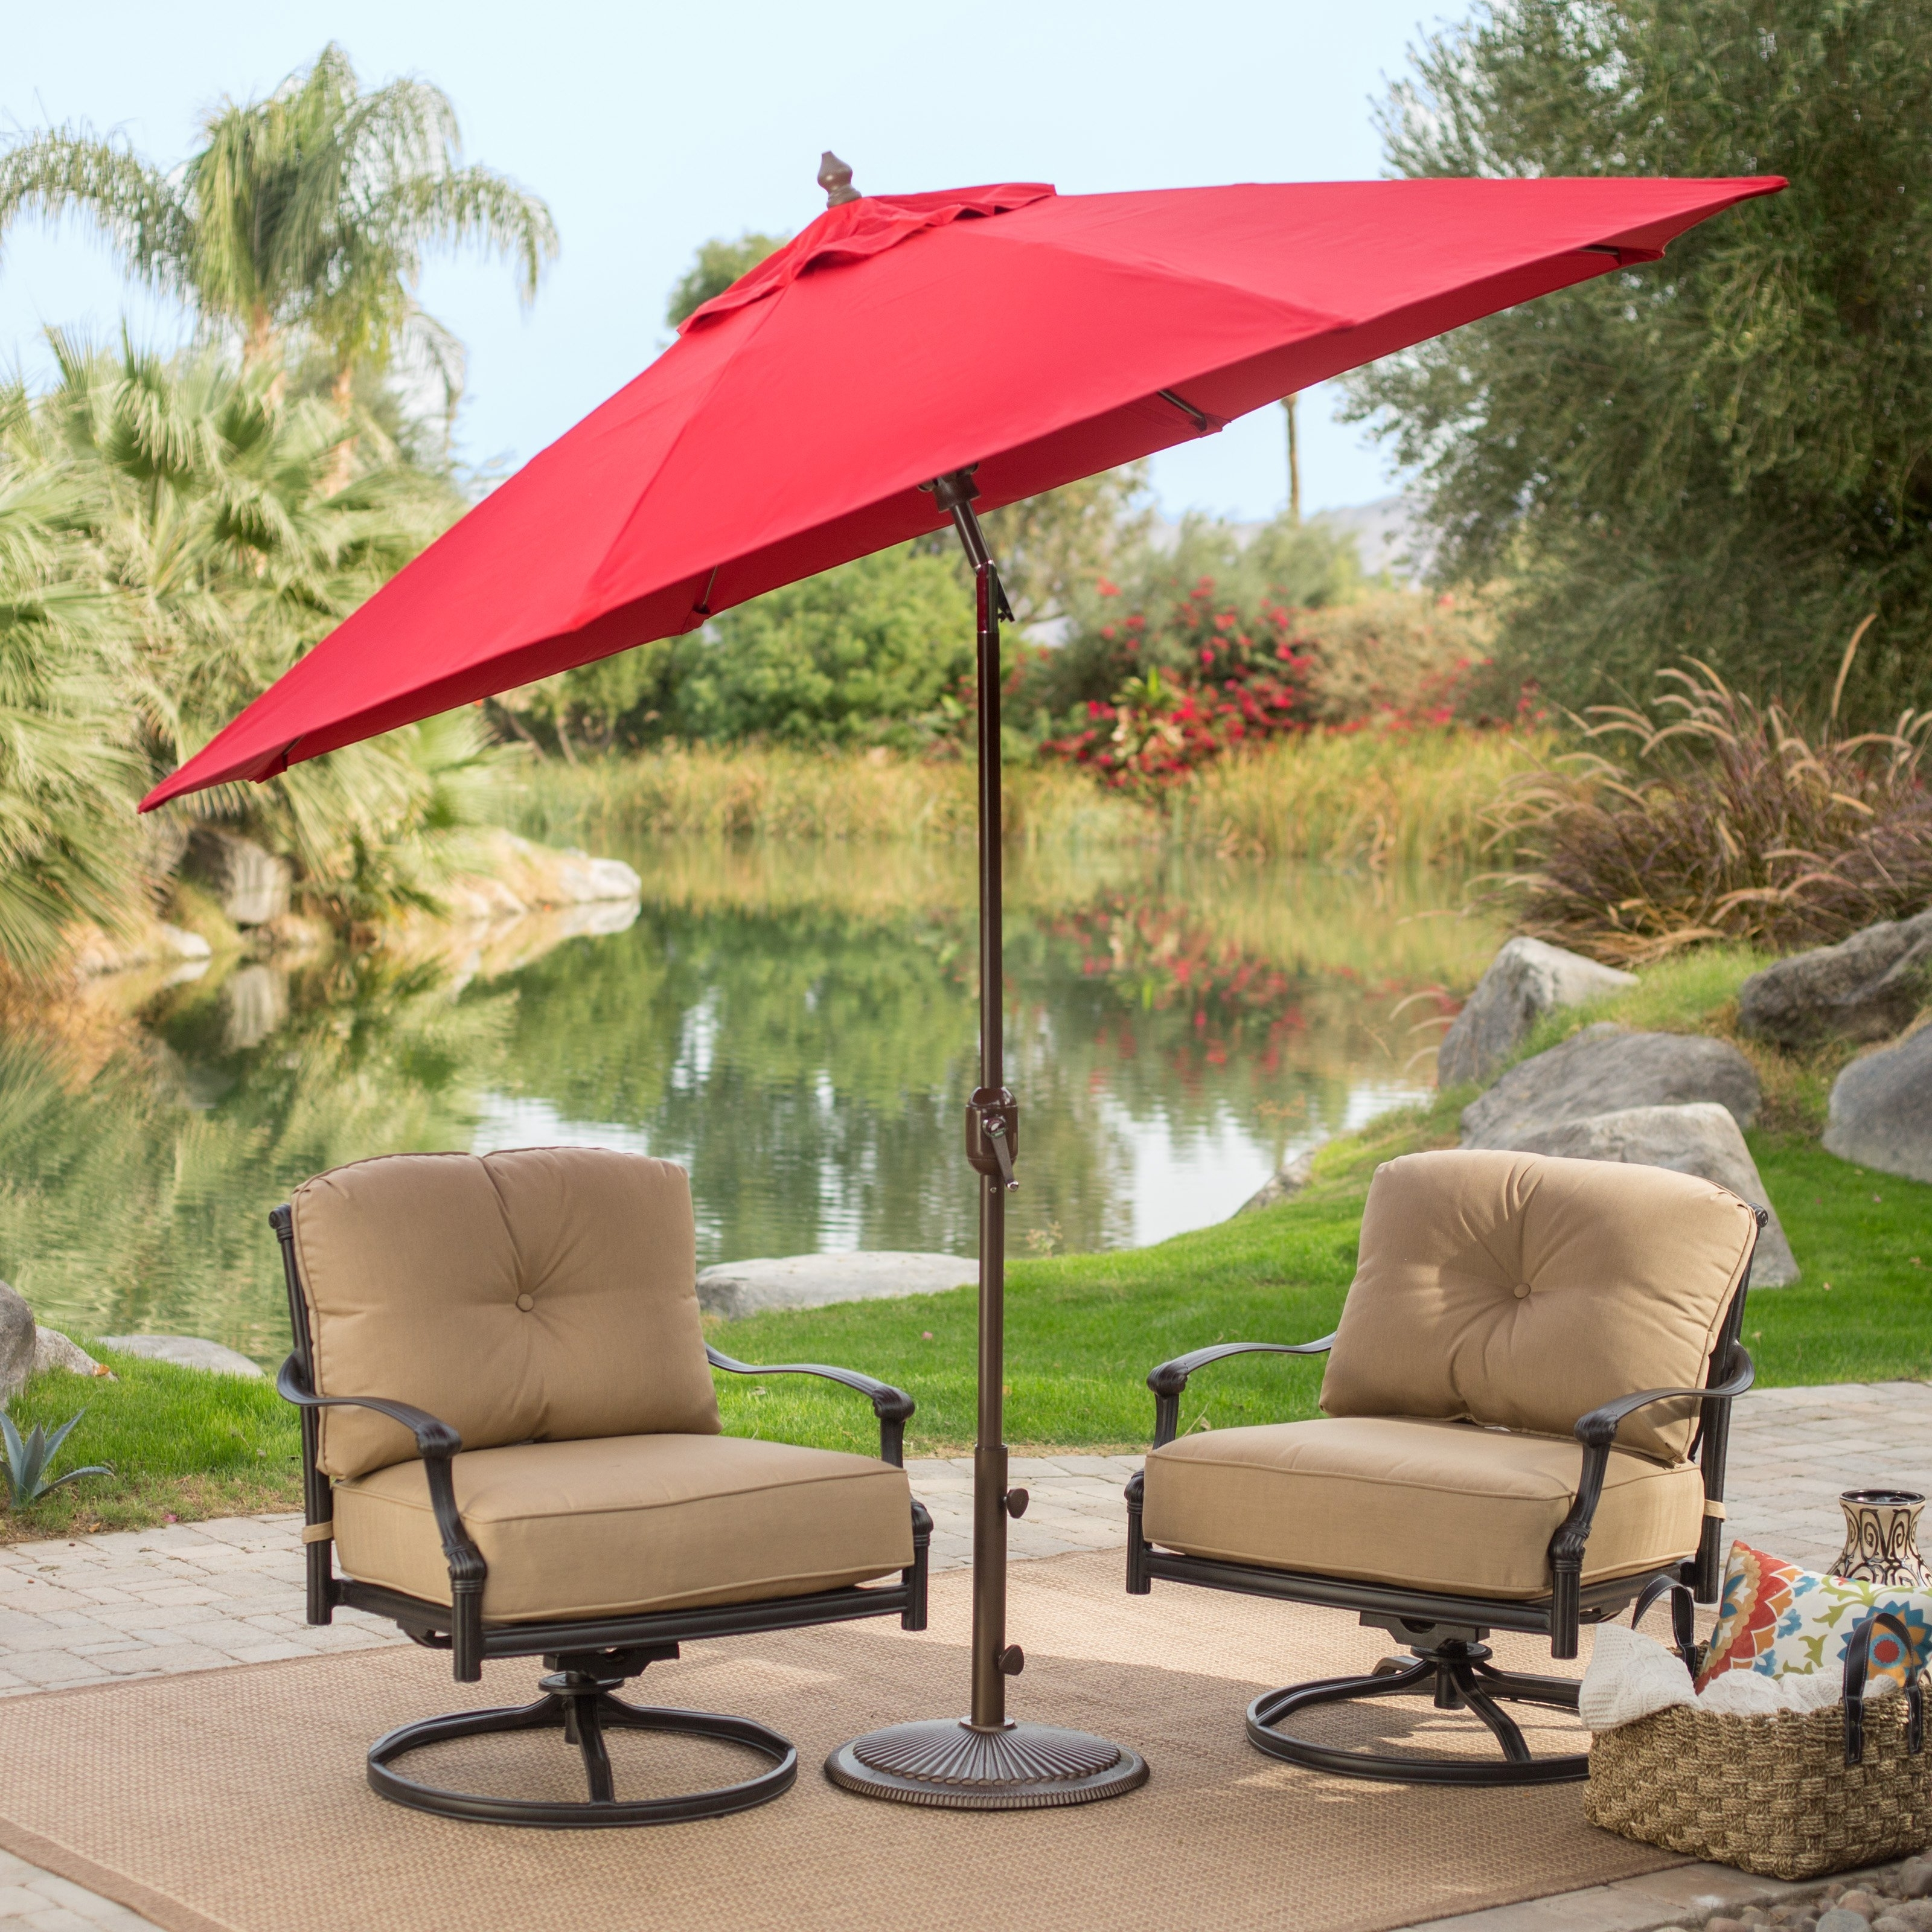 Commercial Patio Umbrellas Sunbrella Pertaining To Famous Coral Coast 9 Ft (View 2 of 20)